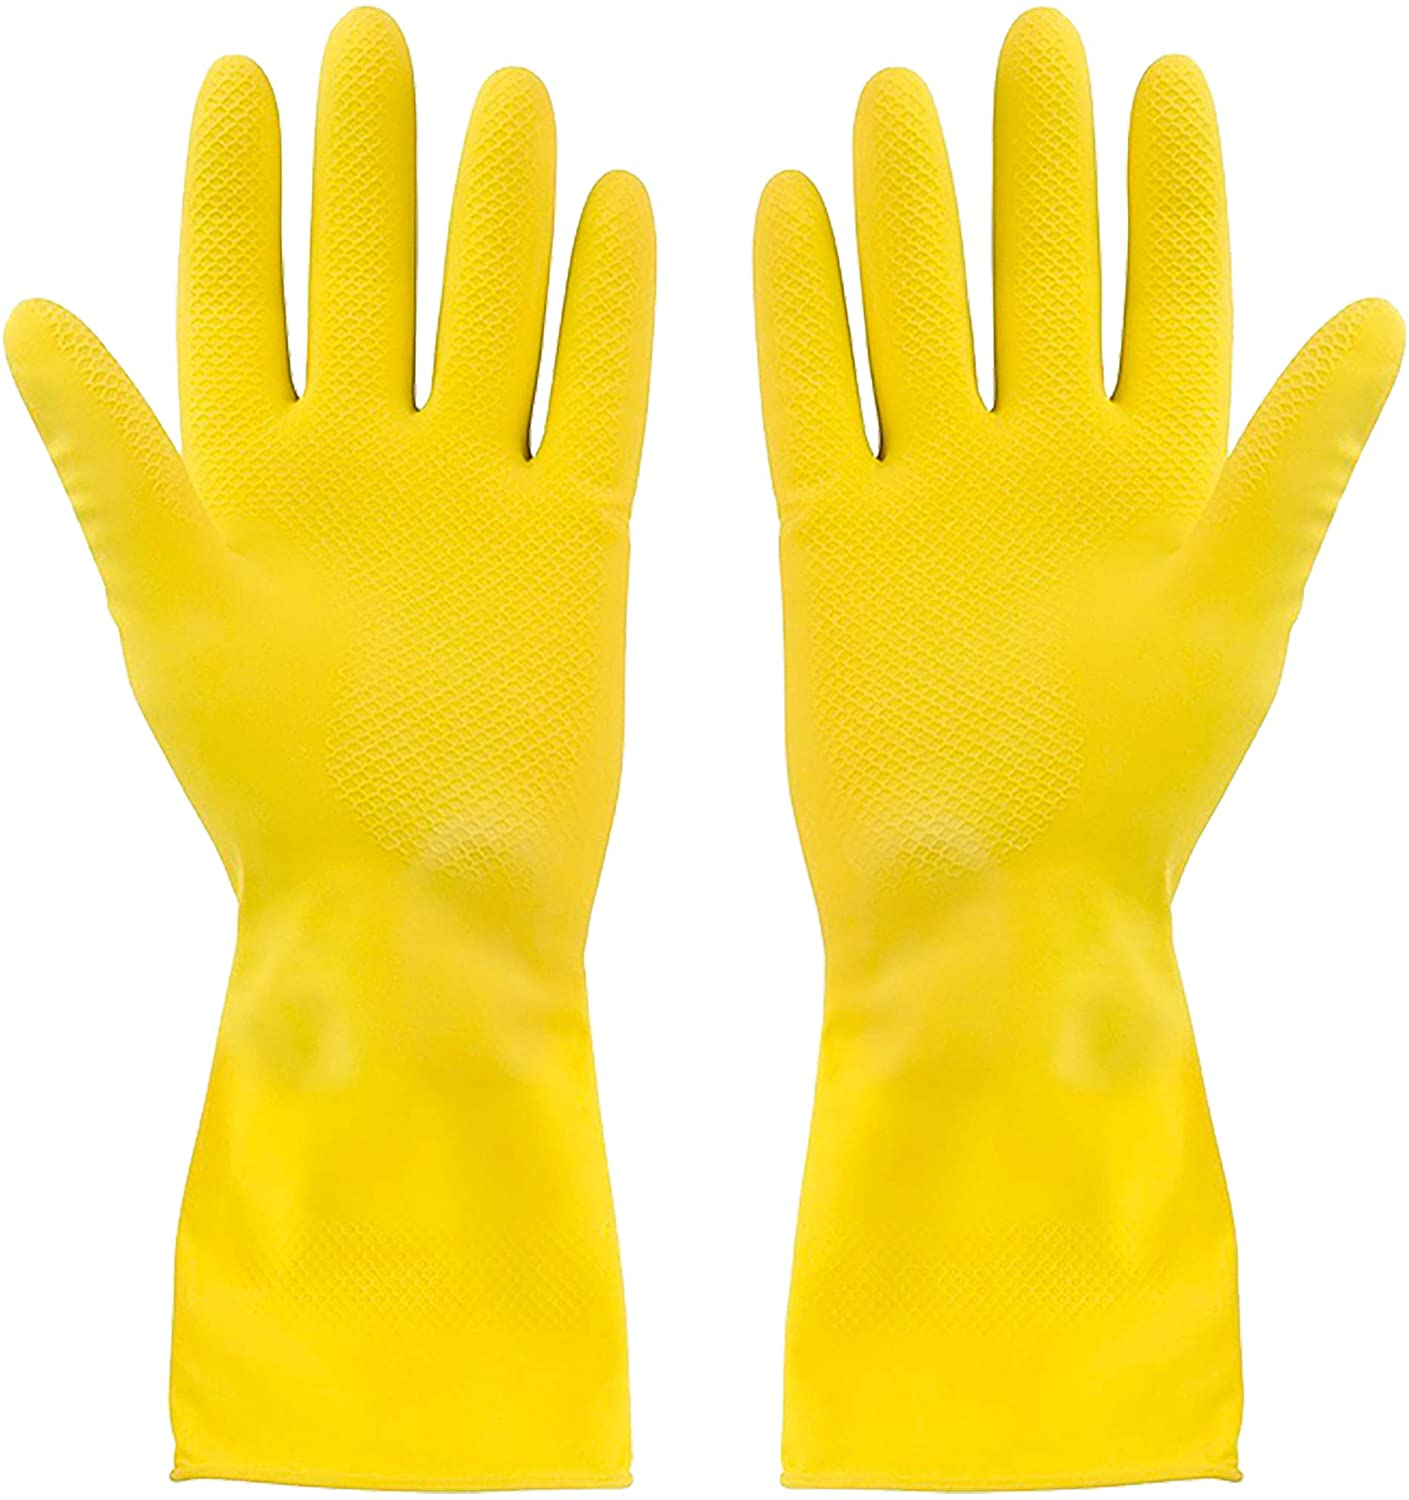 SteadMax 2 Natural Rubber Gloves, Individually Packed Pairs for Single Use, Natural Rubber Latex Yellow Cleaning Gloves, Small (2 Pairs)